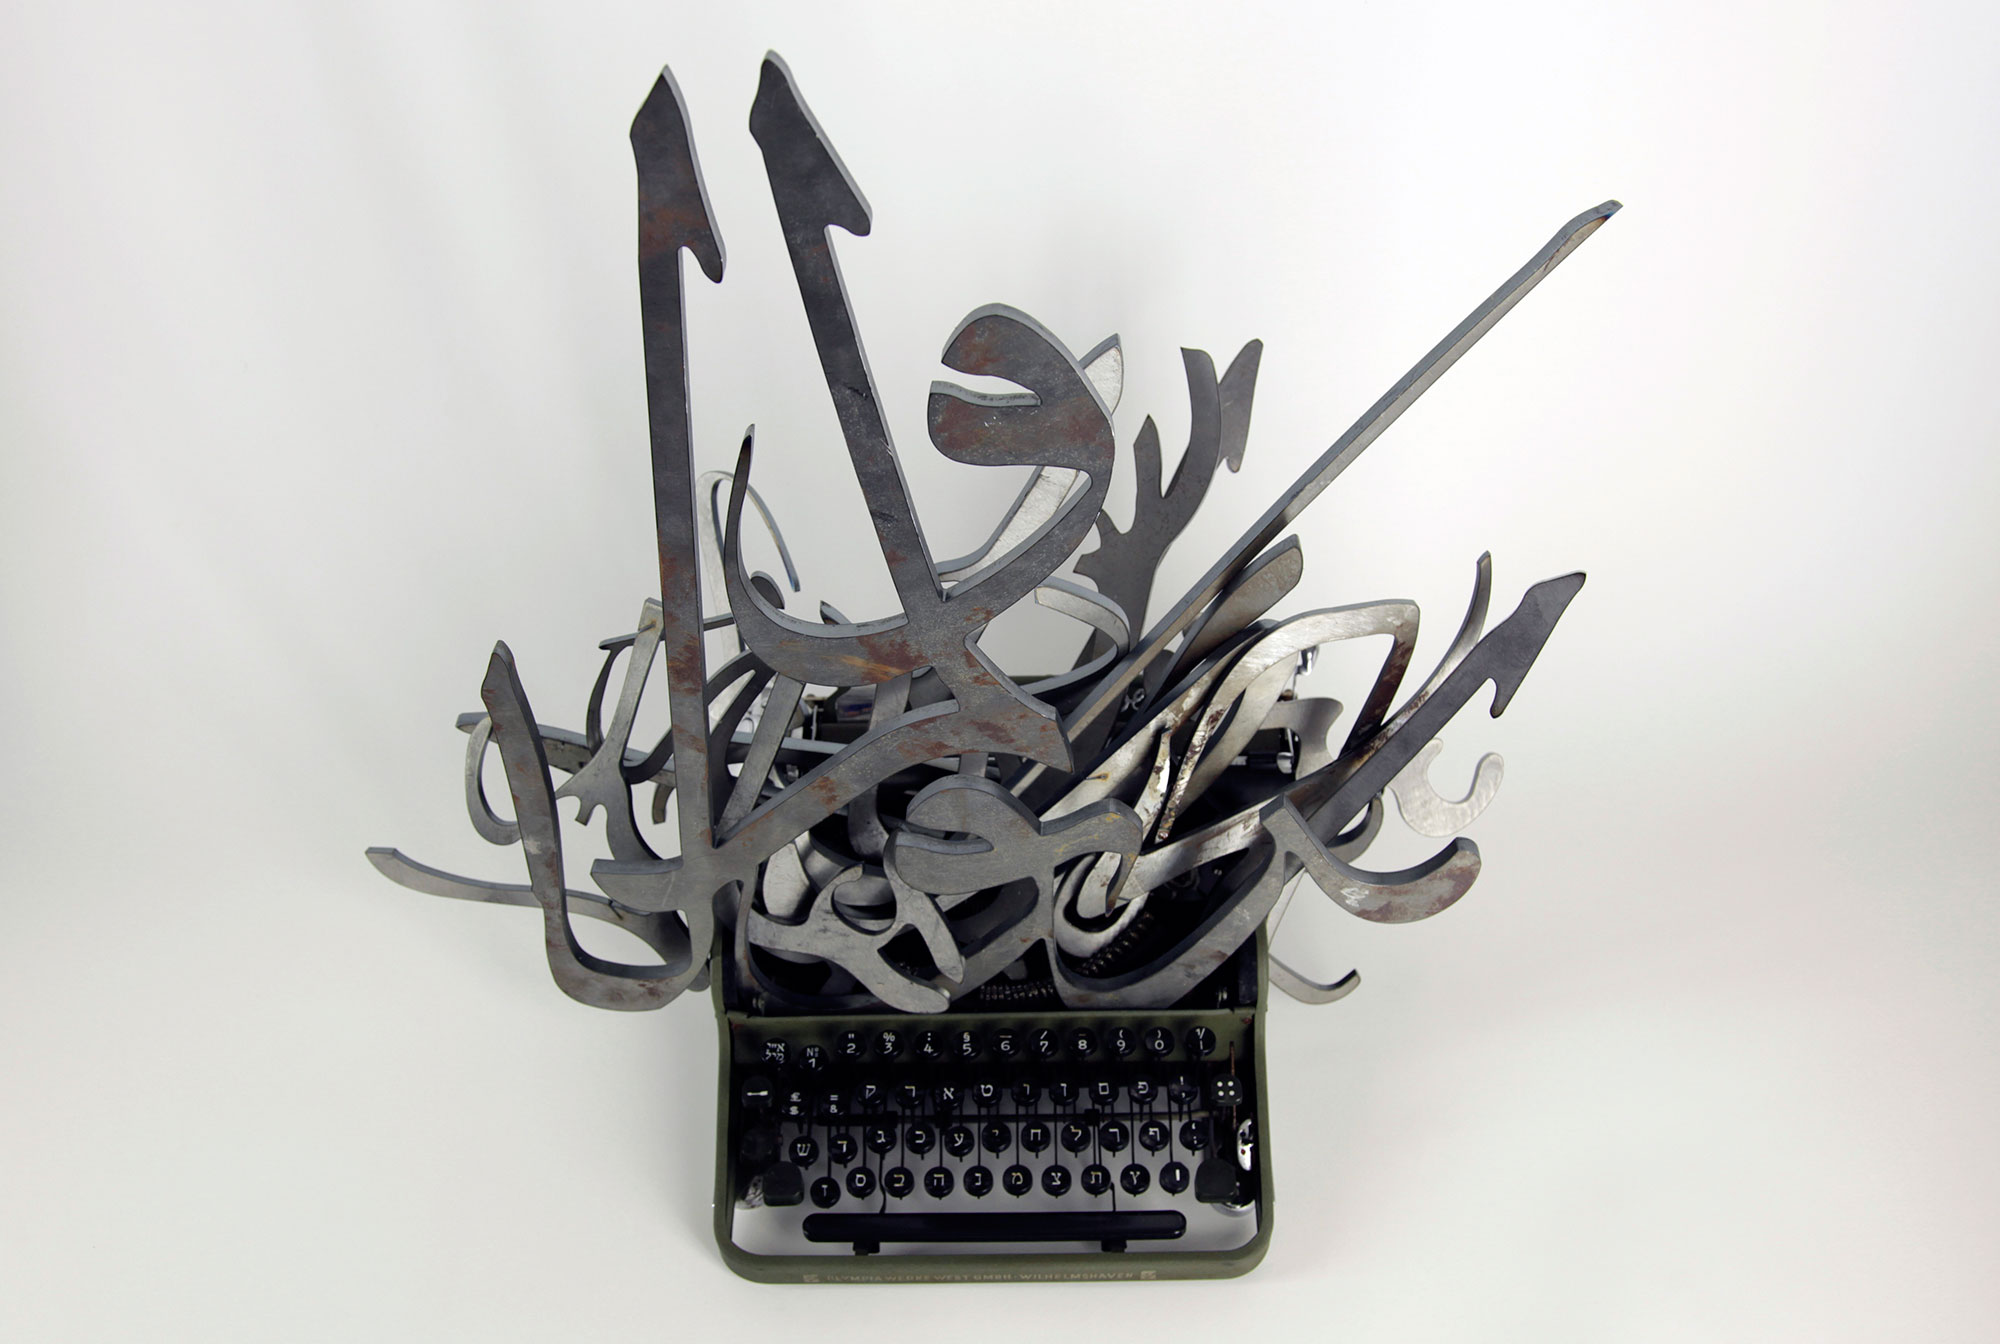 The Impossible Union , 2011, arabic calligraphies of steel, hebrew typewriter.Courtesy of the artist and Collection of the Kunstpalast Museum, Duesseldorf. Photo credit : Mounir Fatmi